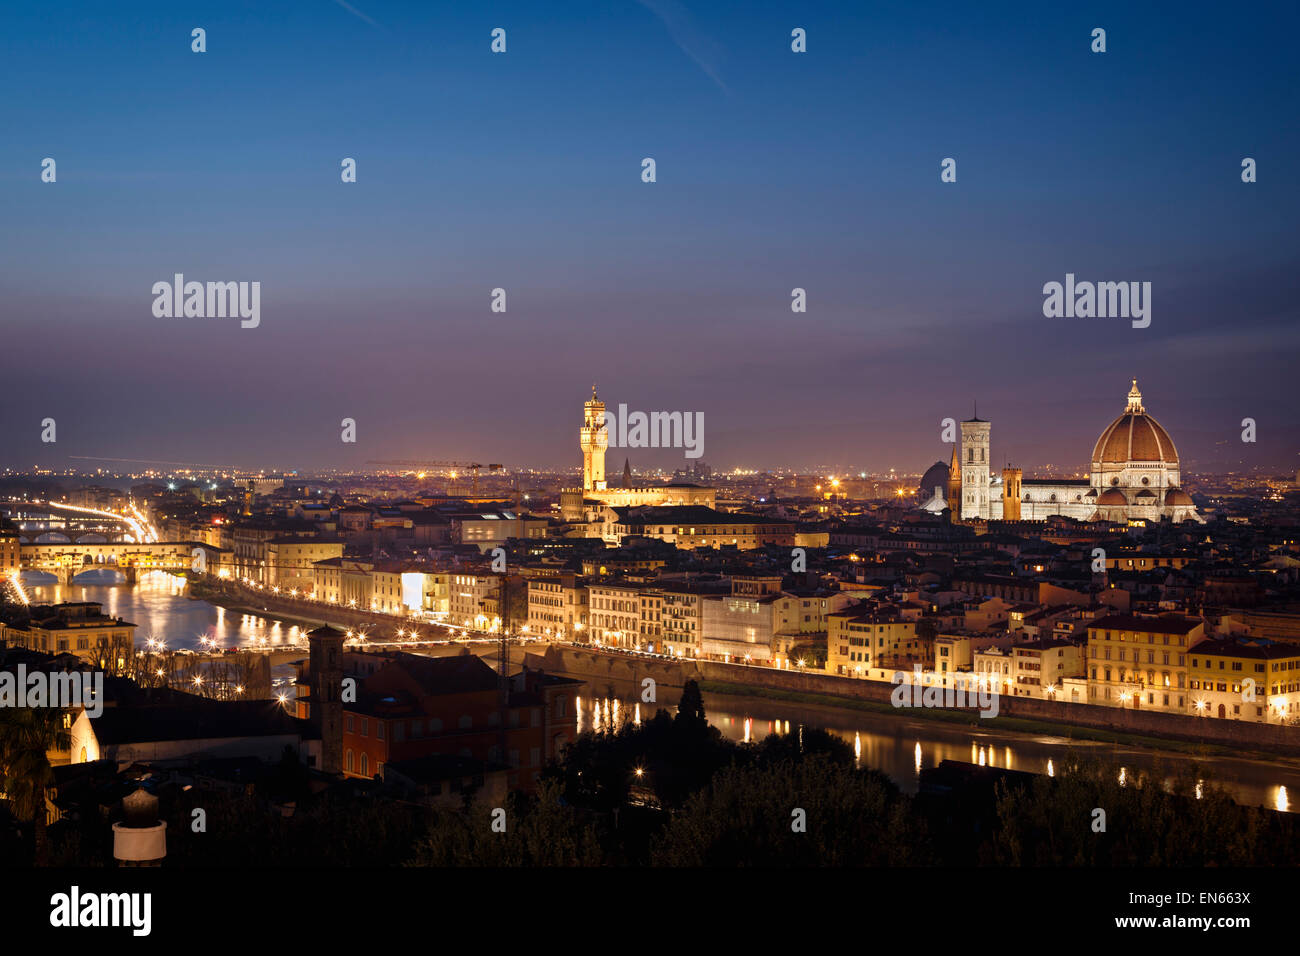 Florence at night with Ponte Vecchio, Duomo and Palazzo Vecchio, Tuscany, Italy. - Stock Image